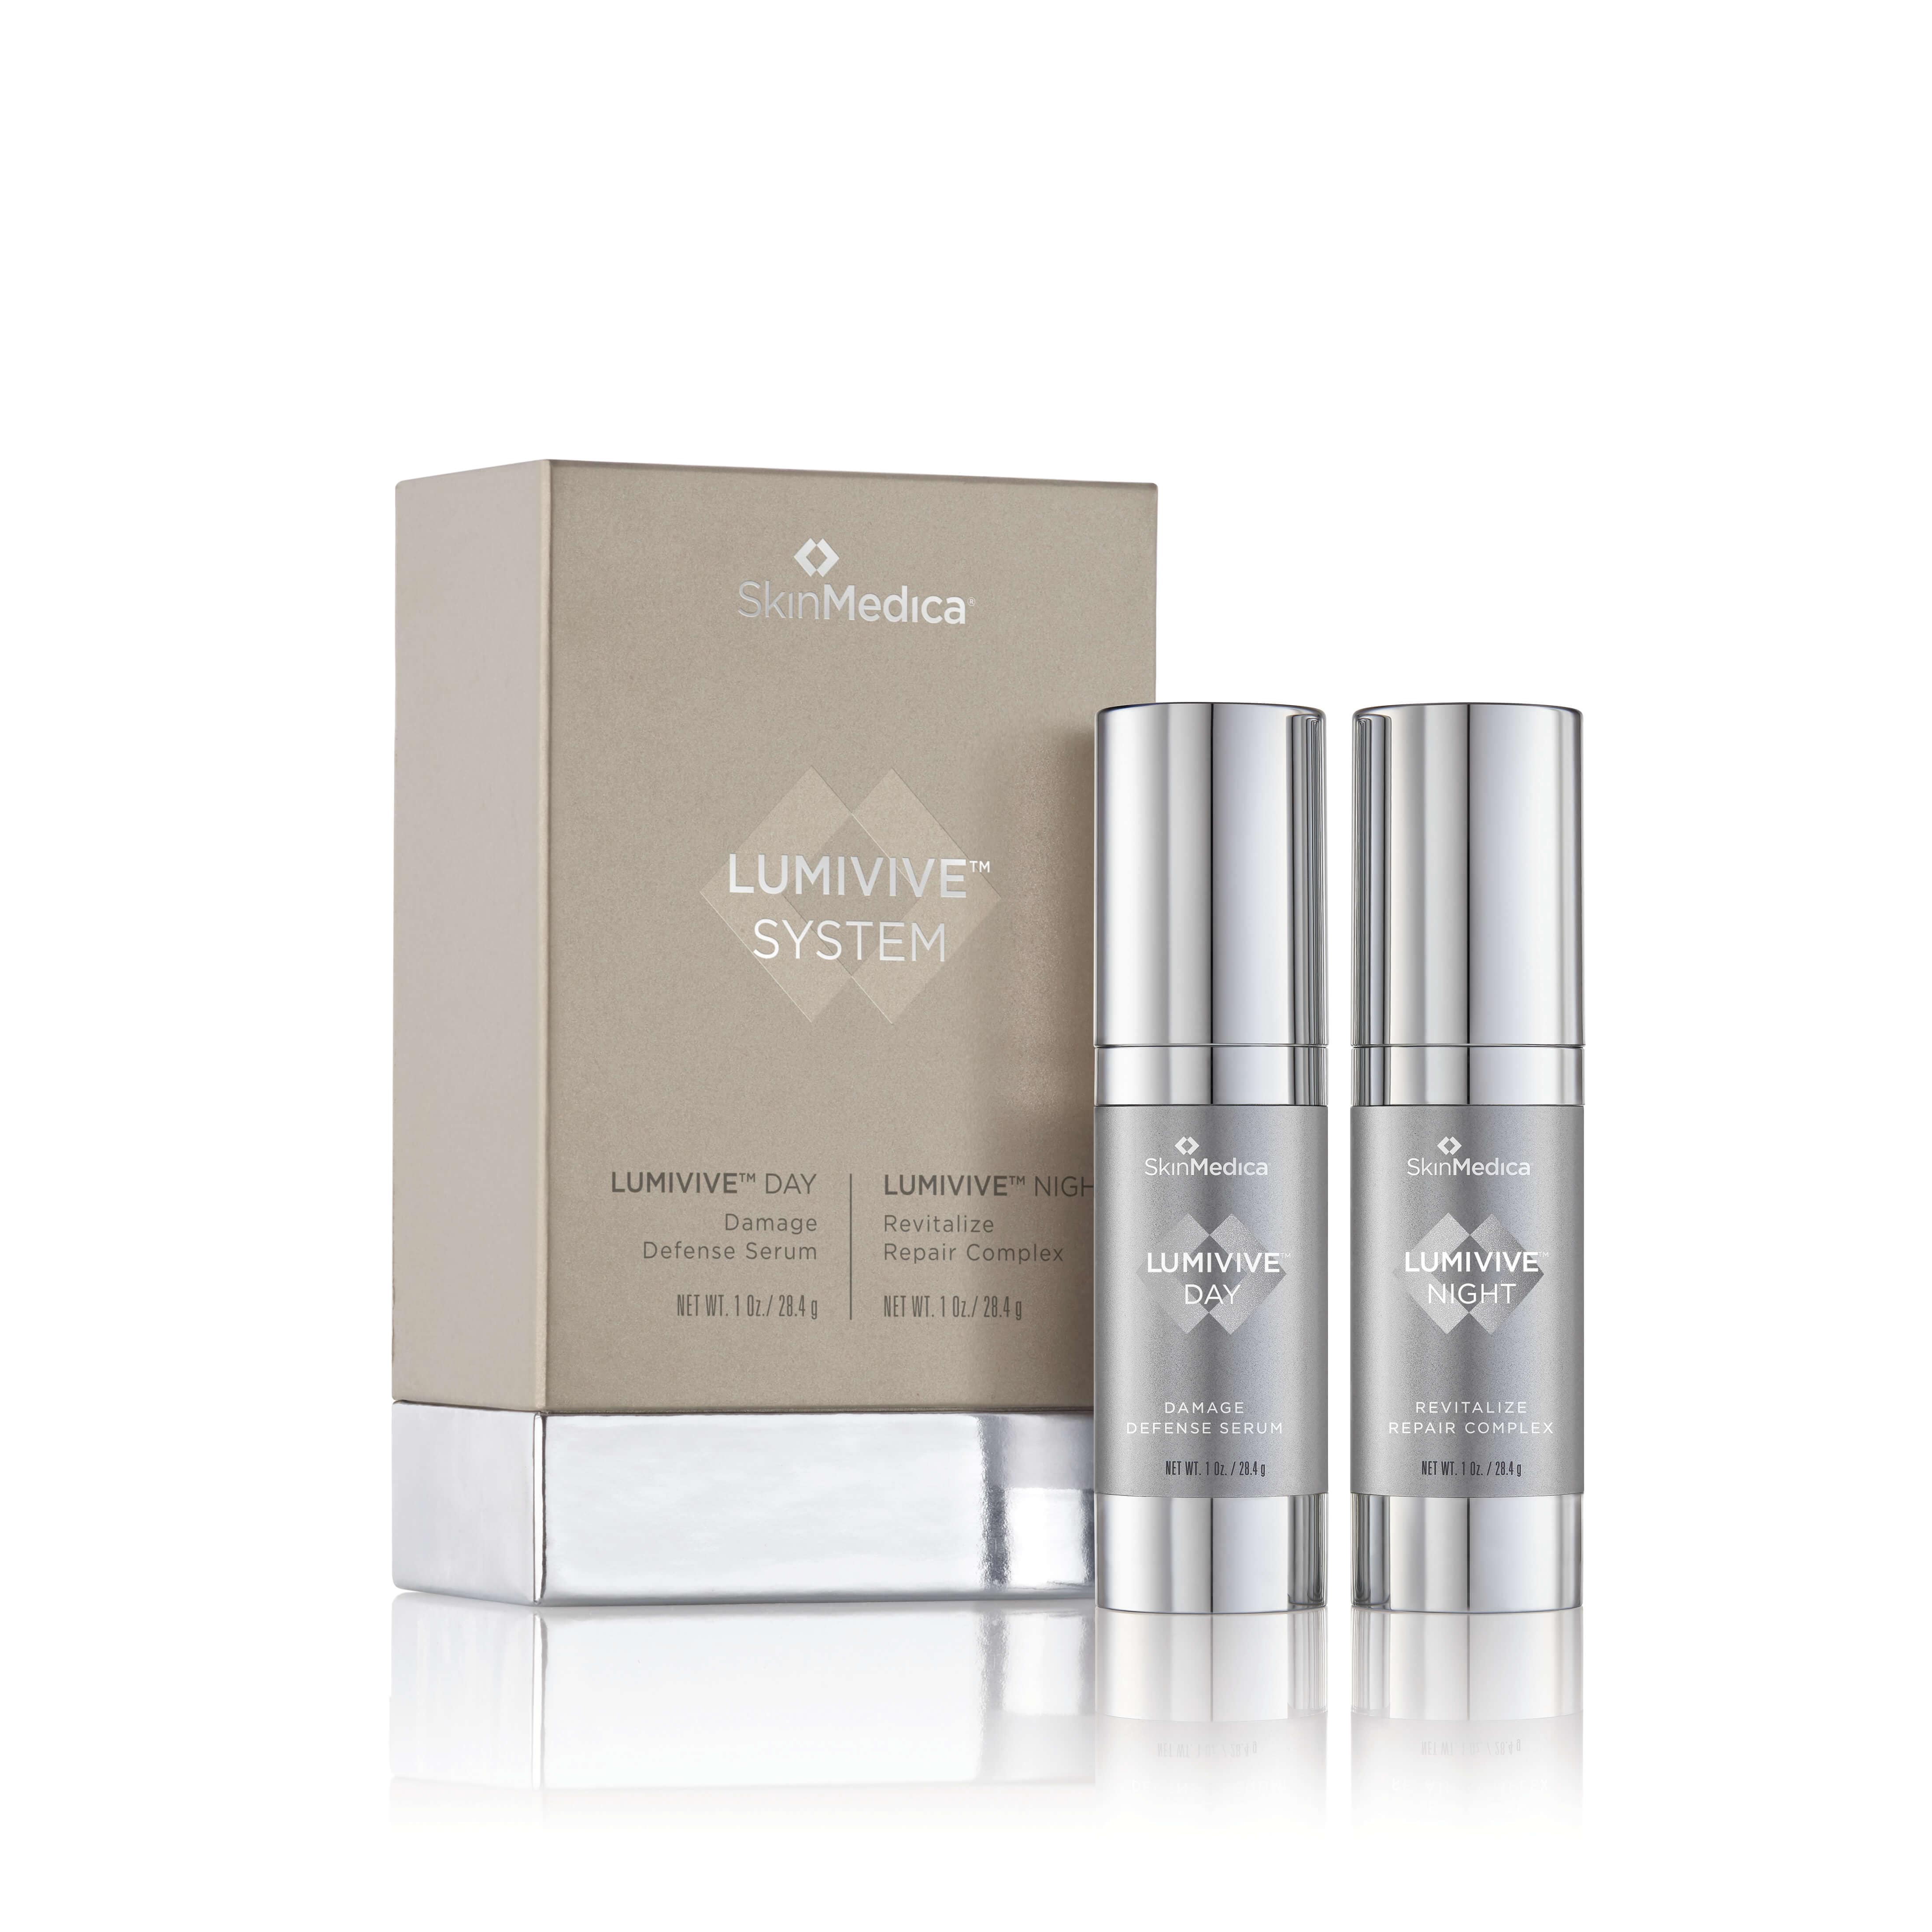 image descriptionSkinMedica - LUMIVIVE System